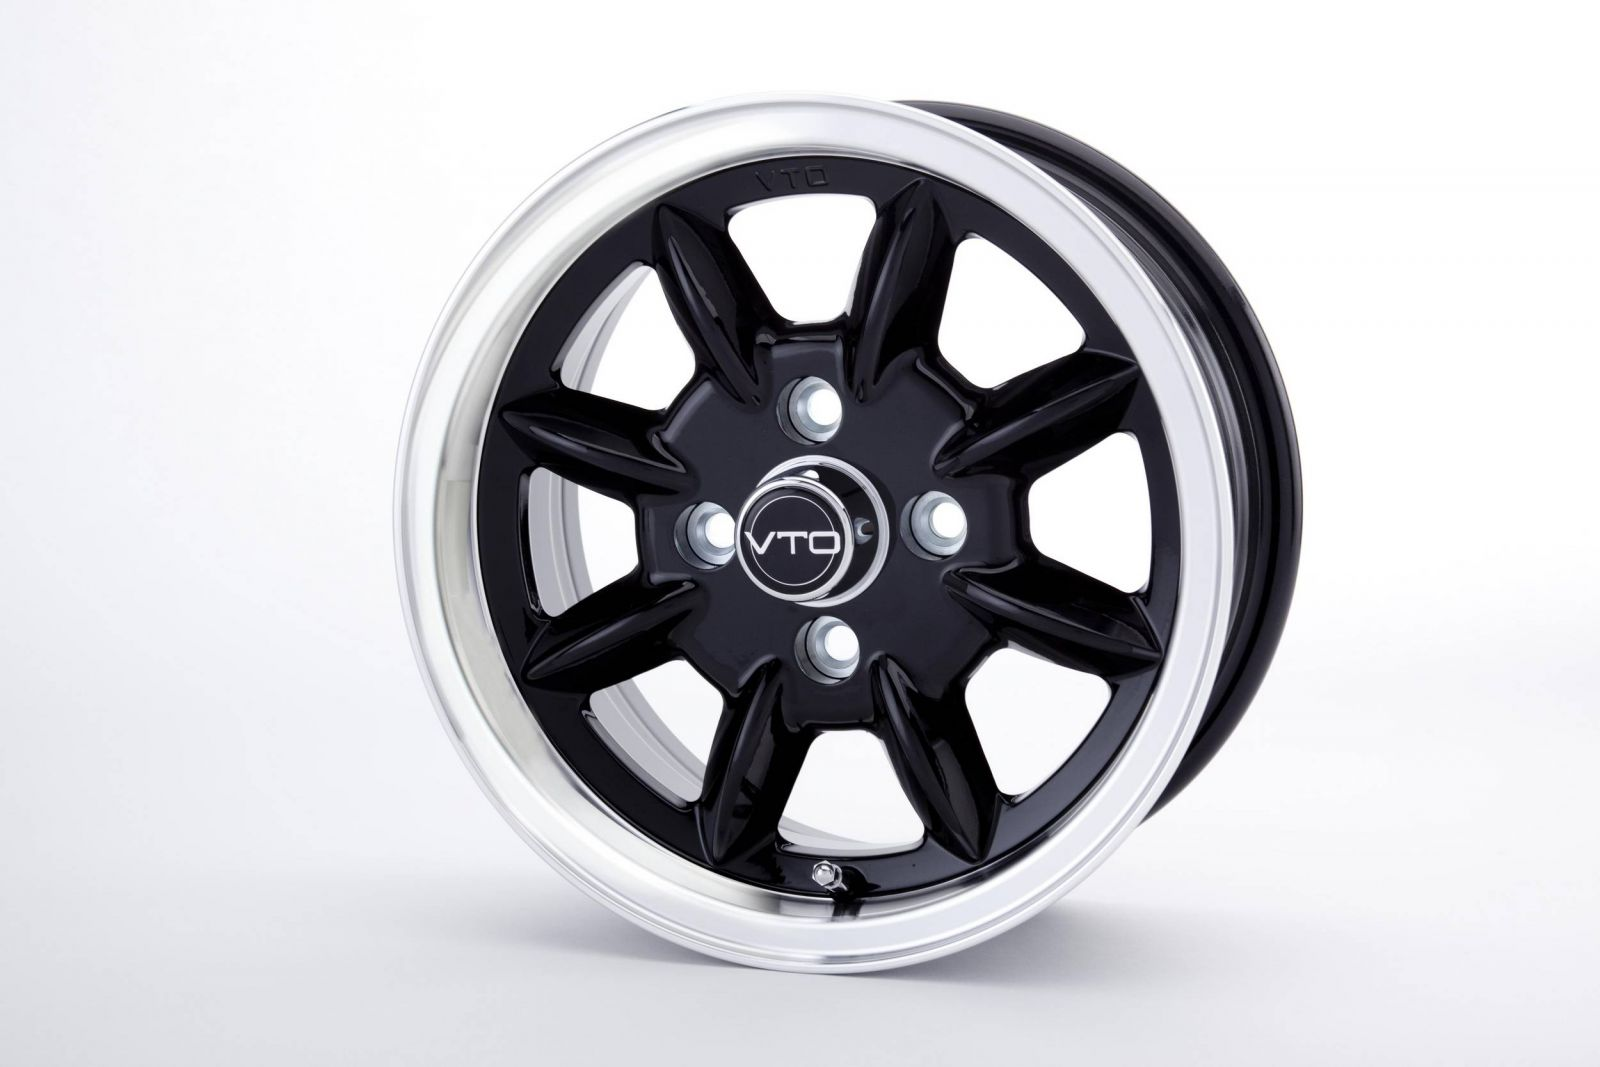 VTO Wheels - Classic 8 & Retro 4